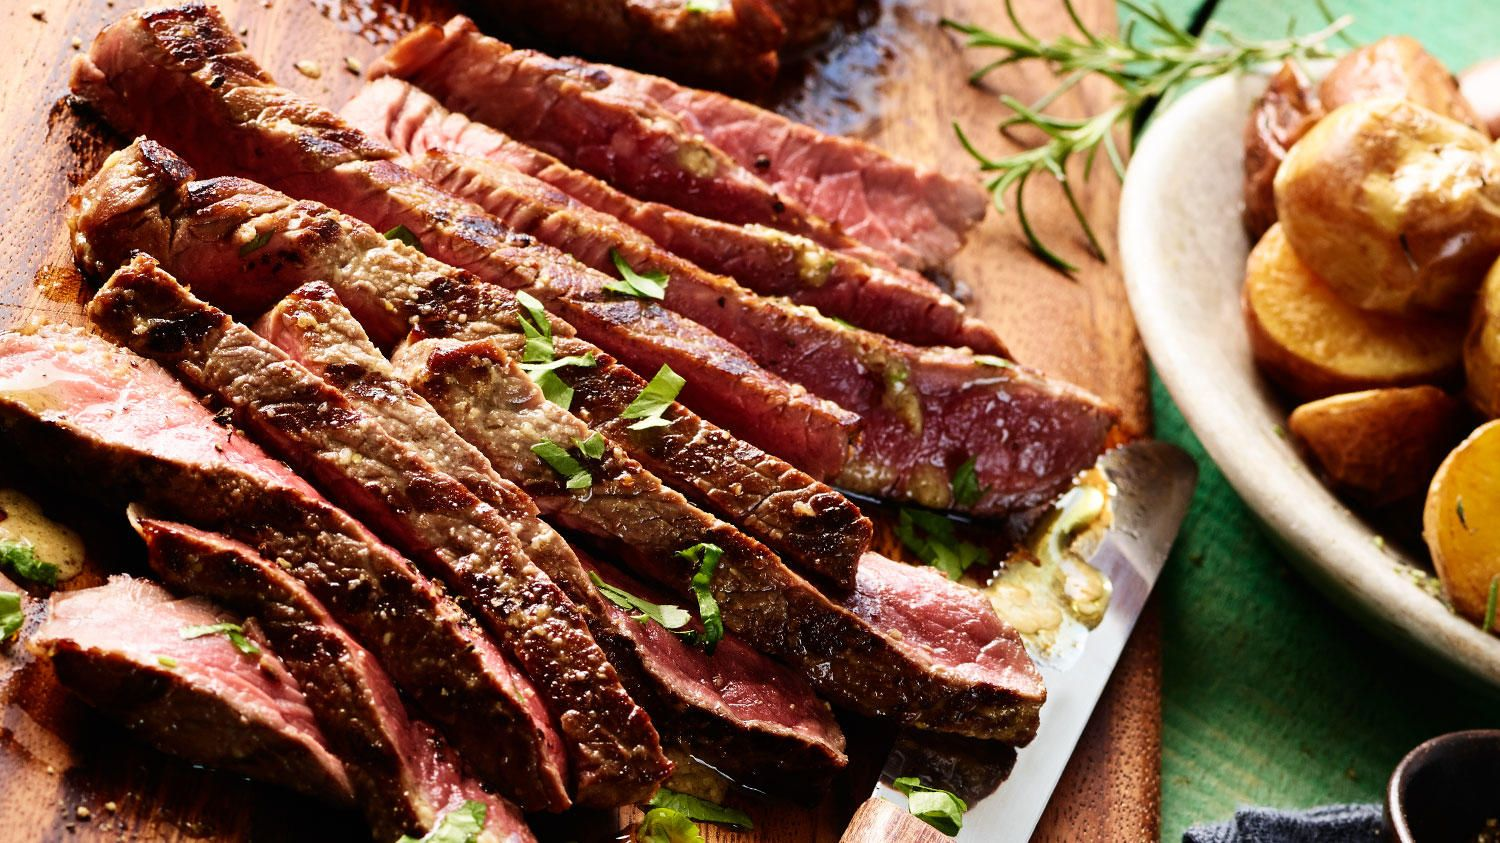 Fire up some sterling silver top sirloin steaks for your